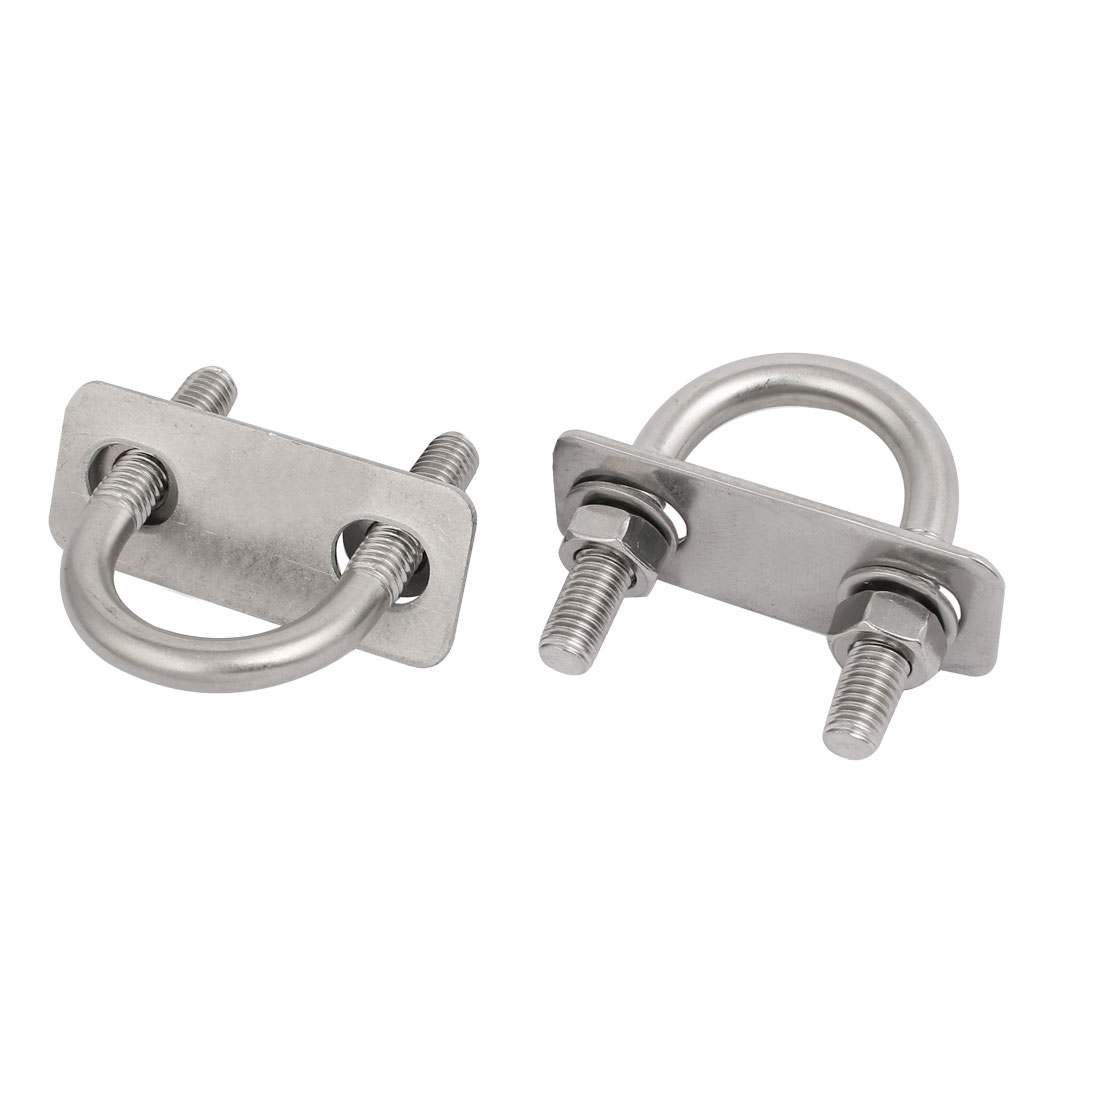 Unique Bargains 2pcs M8x27mm 304 Stainless Steel Round U-Bolt w Plate and  Hex Nut Flat Washer